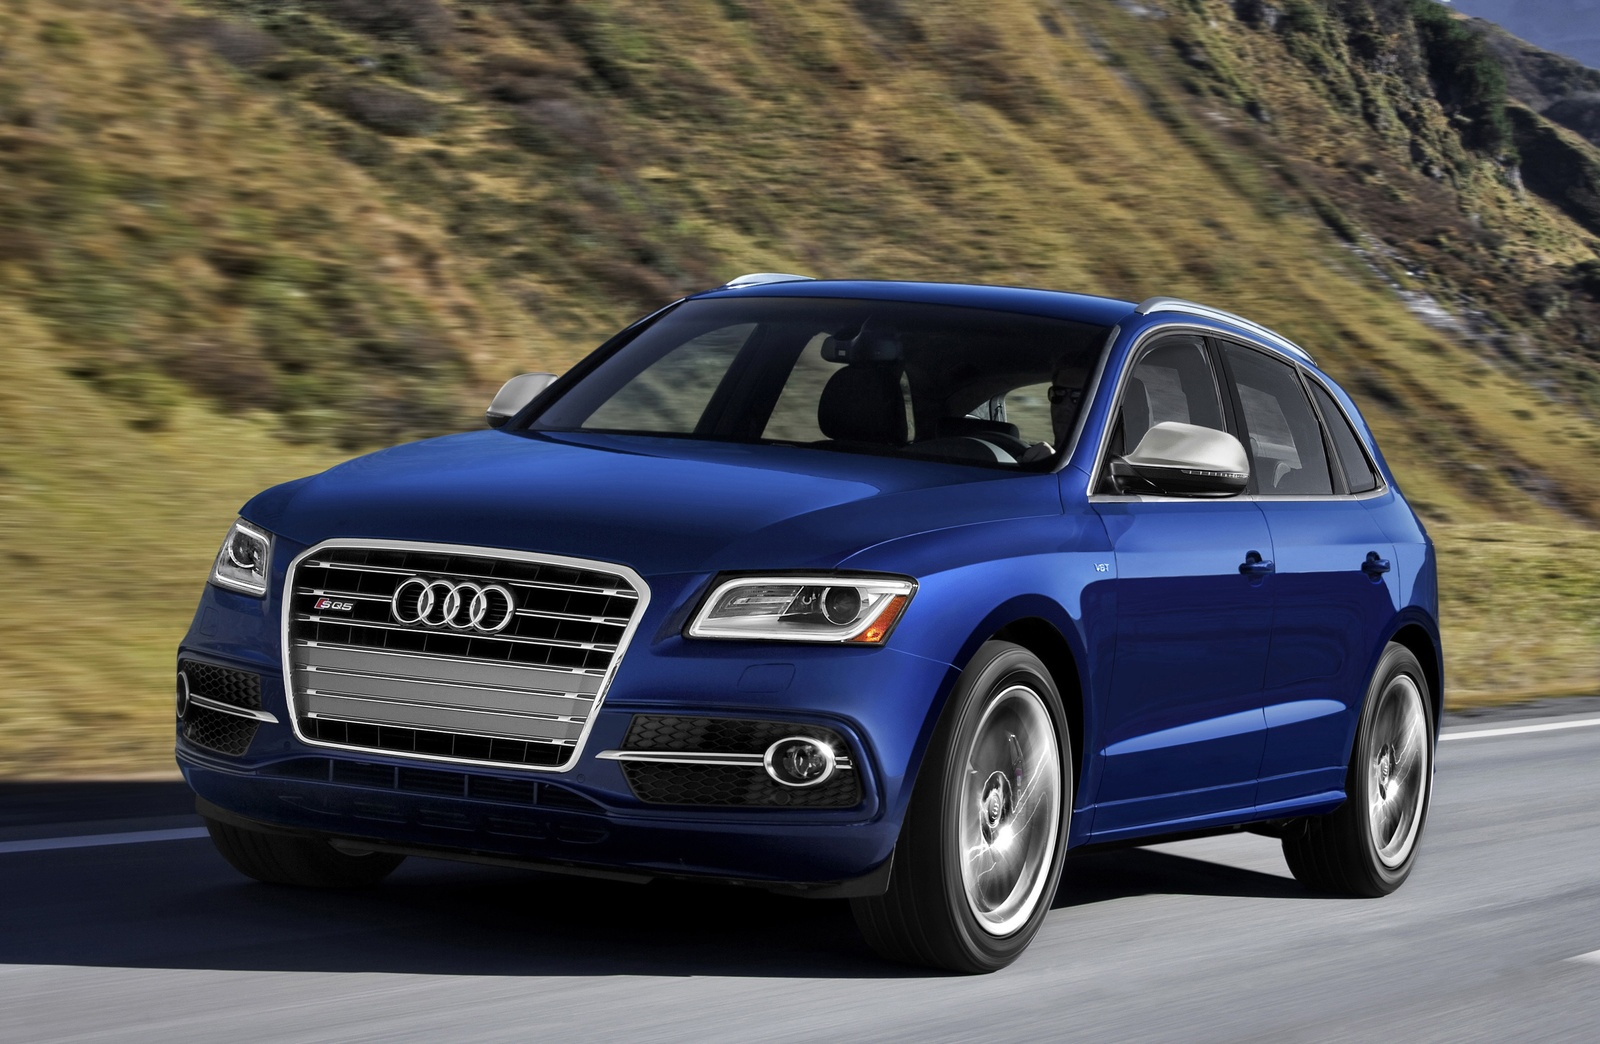 2016 Audi Sq5 Review Cargurus